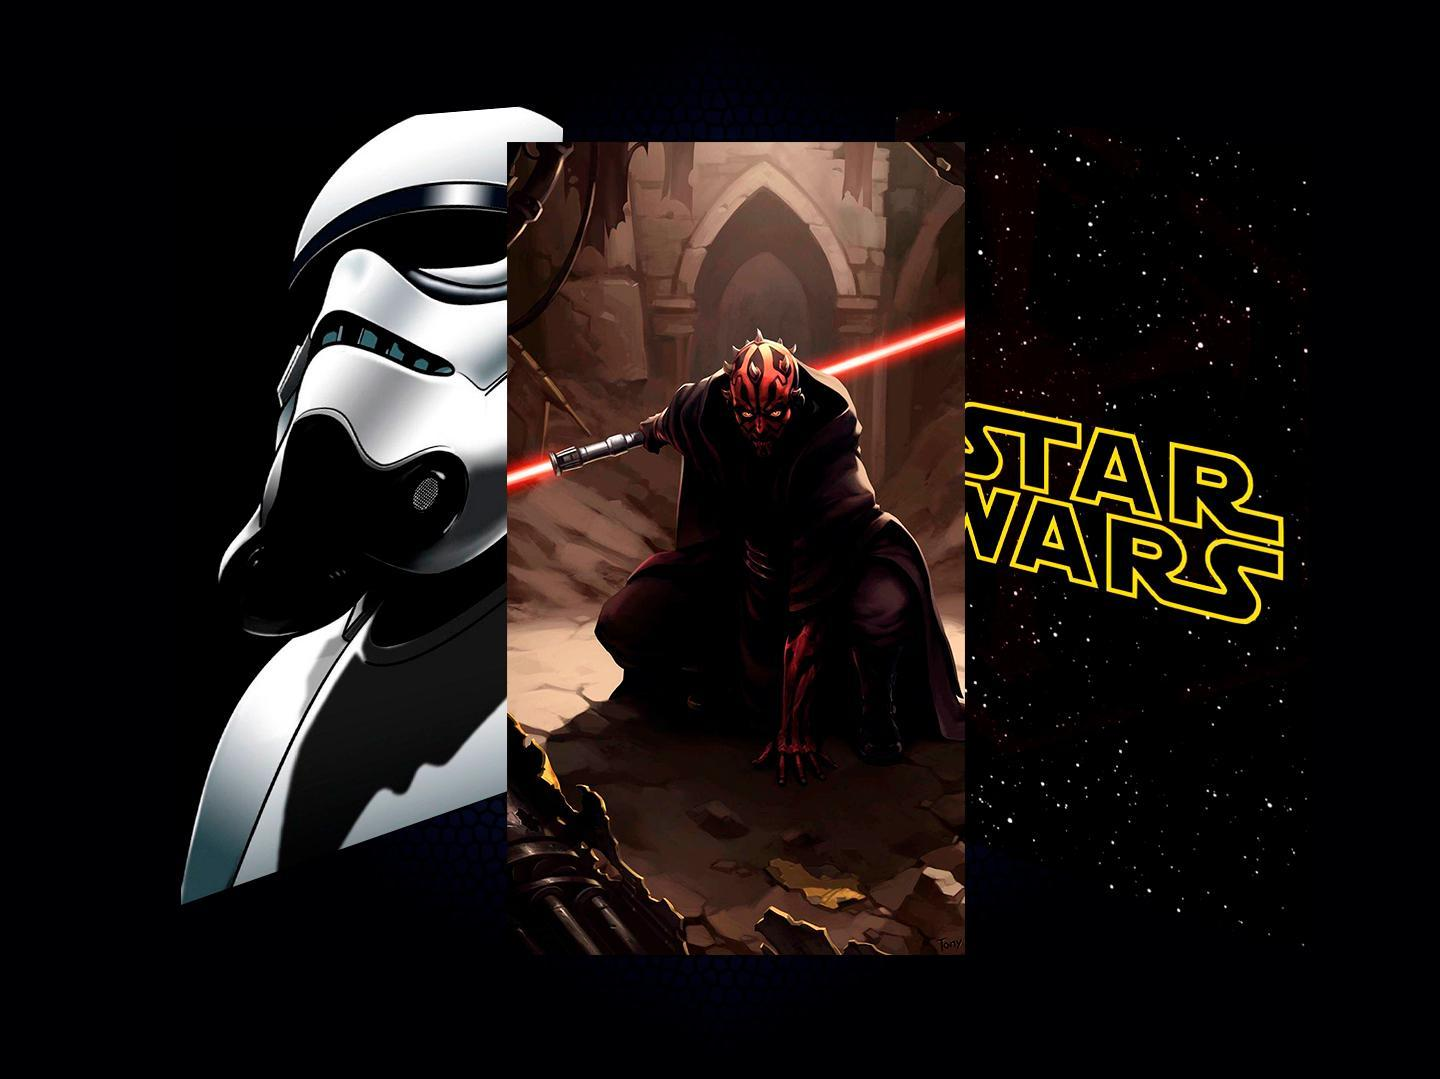 Star Wars Wallpapers Hd For Android Apk Download